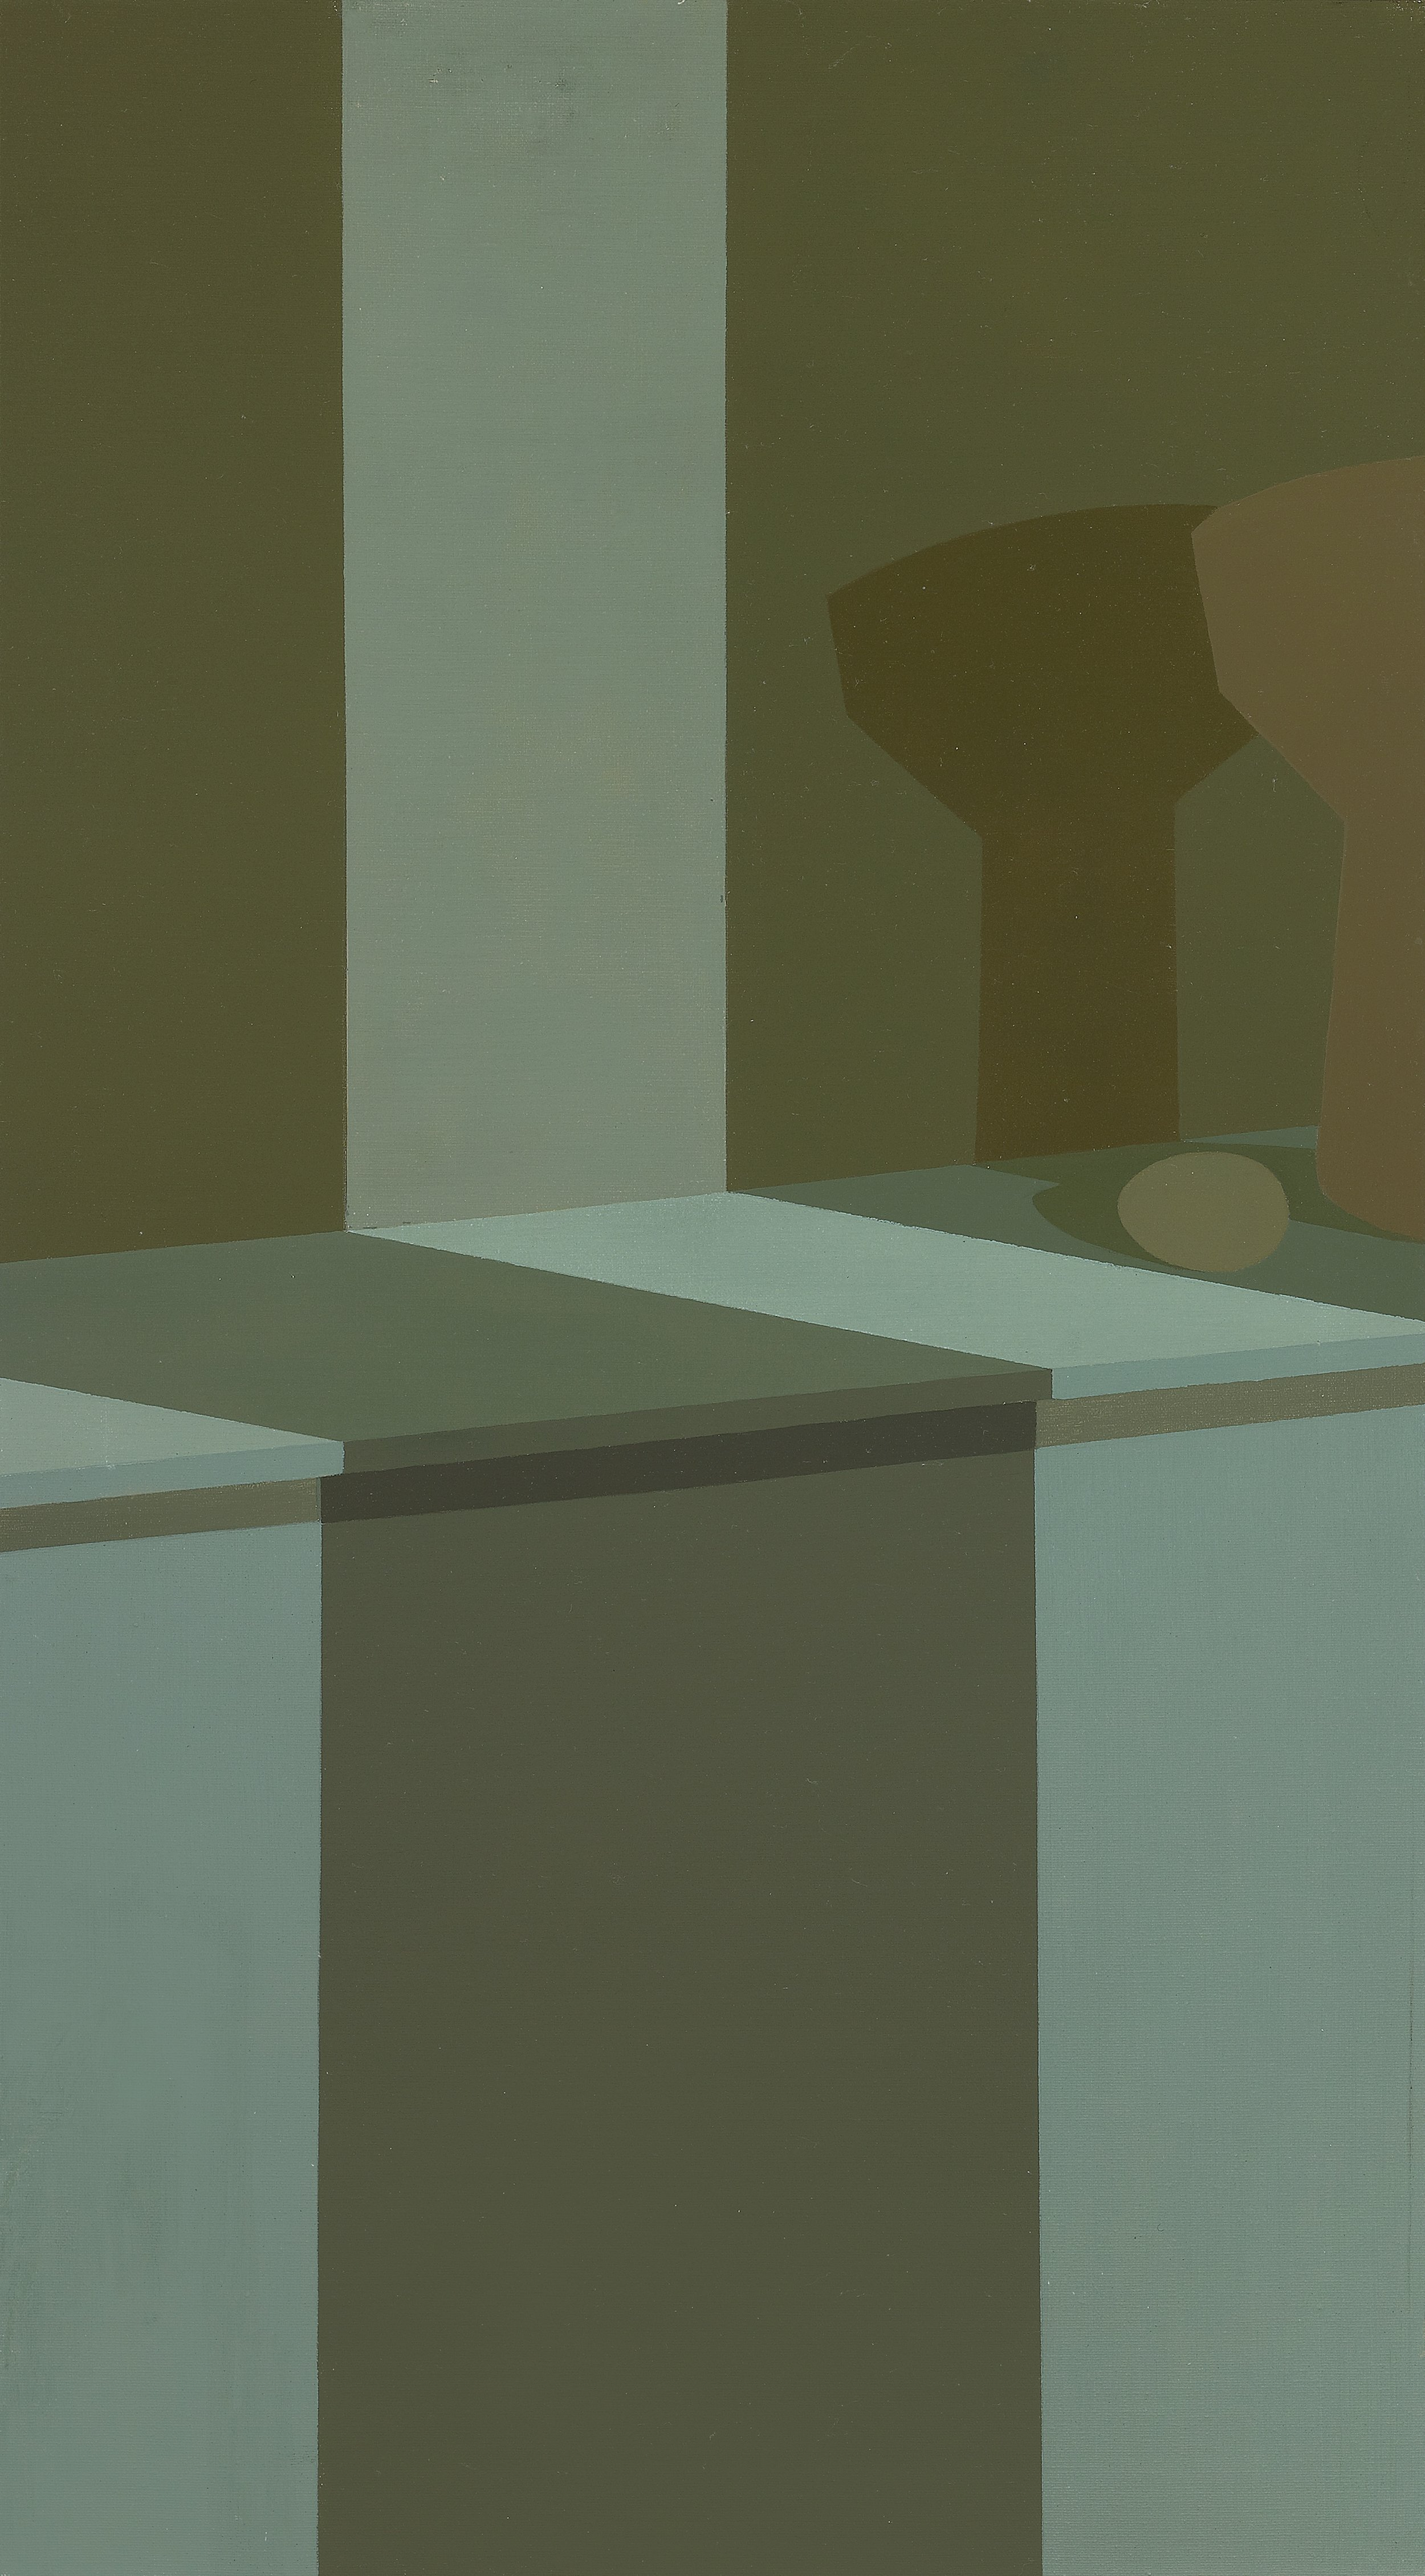 Untitled (Still Life with Shadow) , 1961  oil on canvas 36 x 20 inches; 91.4 x 50.8 centimeters  $45,000